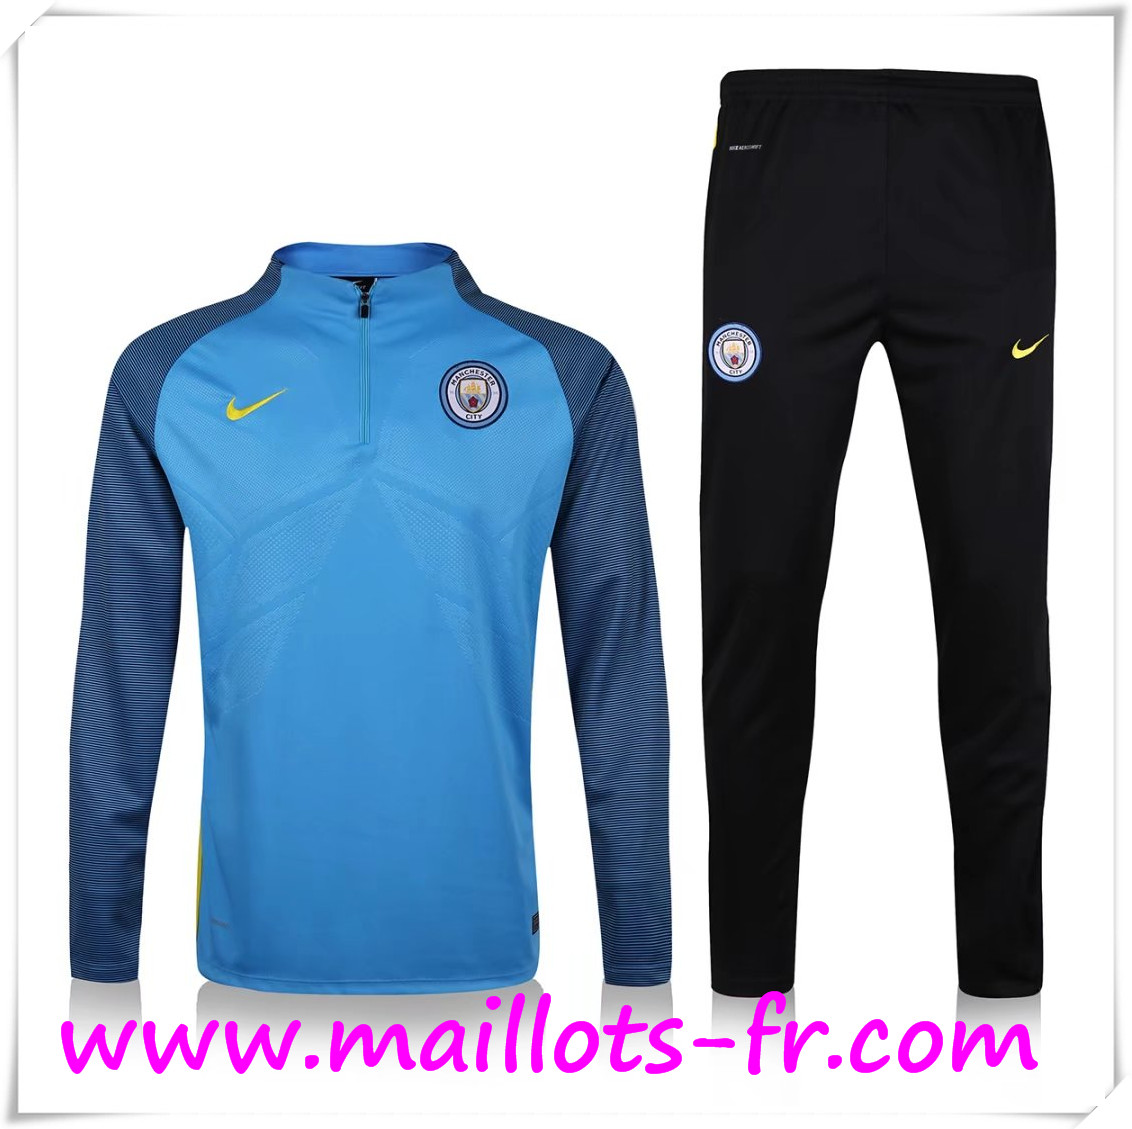 maillots-fr Survetement de Foot Manchester City Blue 2016 2017 Ensemble